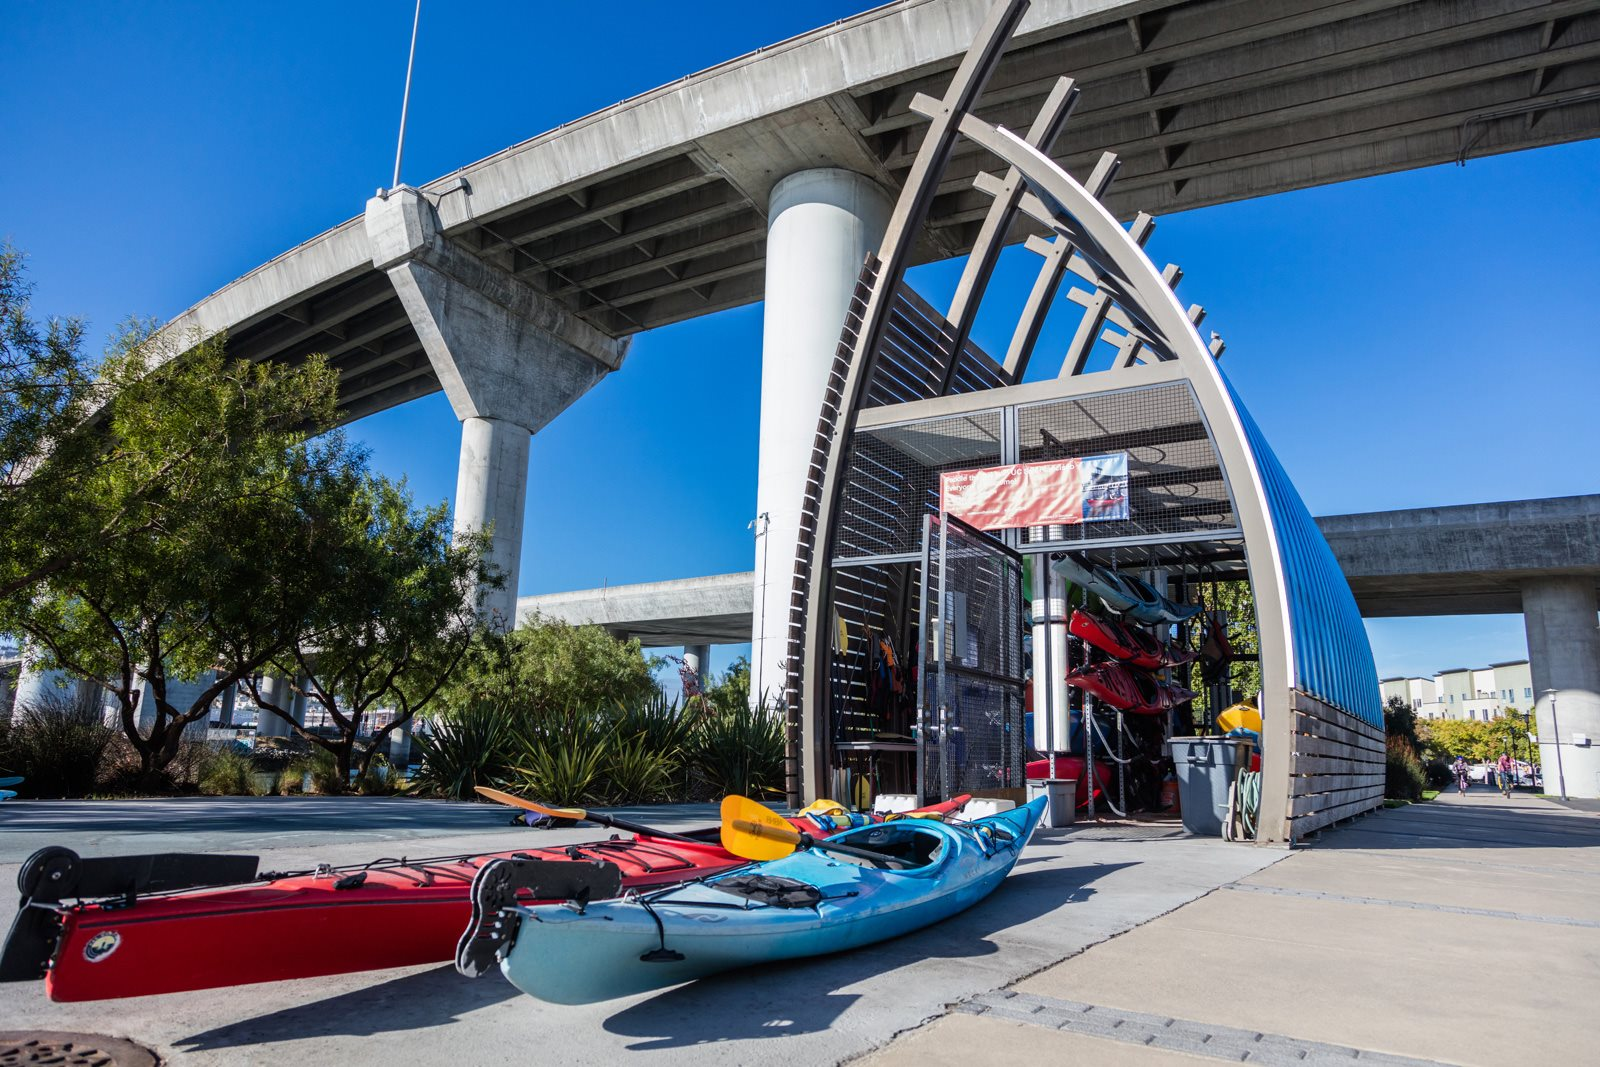 Kayaks Available Nearby at Mission Bay by Windsor, 360 Berry Street, CA